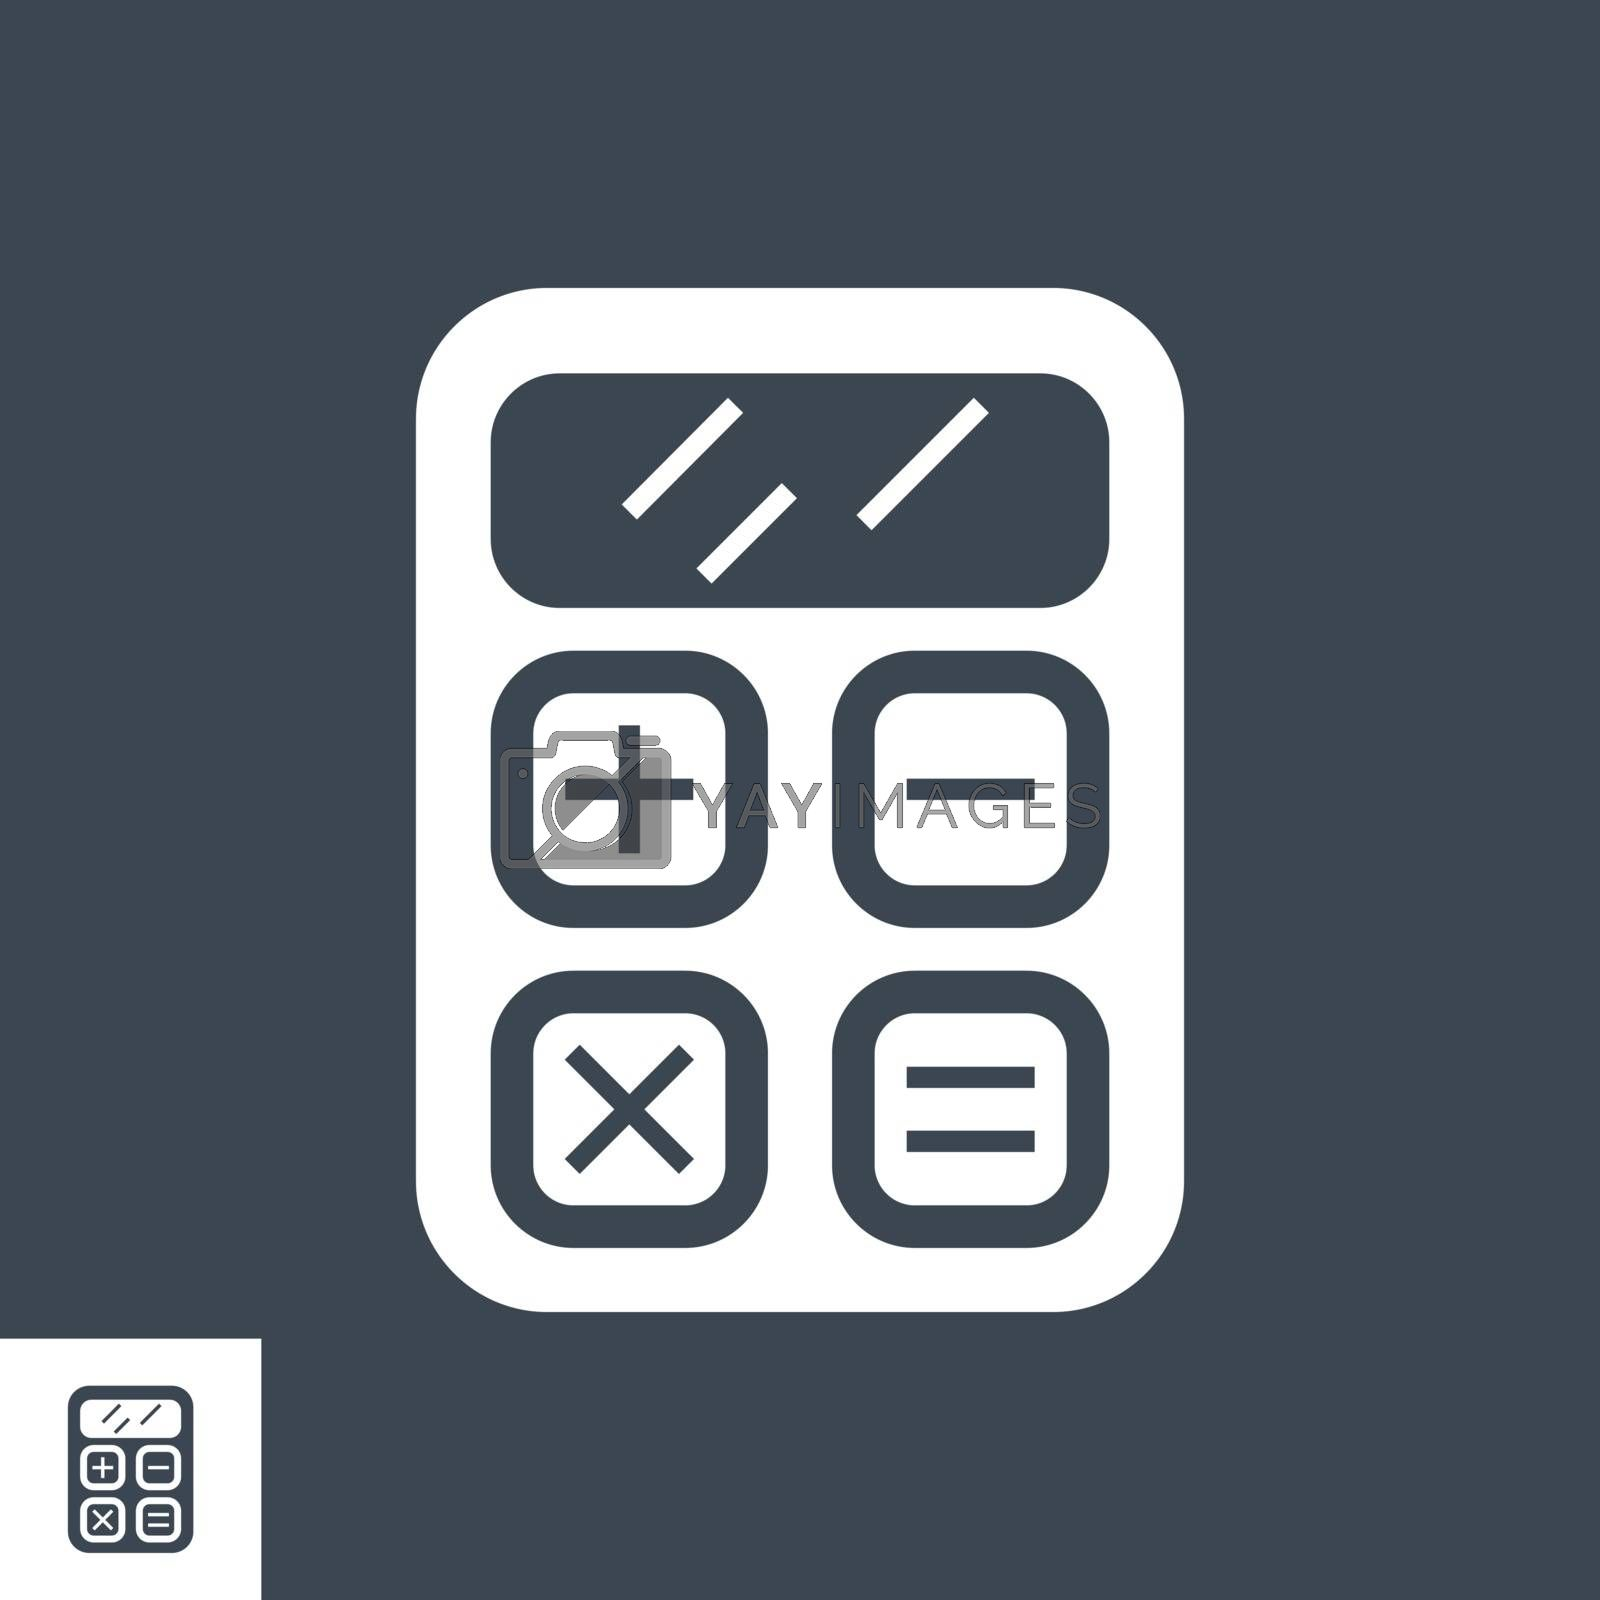 SEO Calculator Related Vector Glyph Icon. Isolated on Black Background. Vector Illustration.